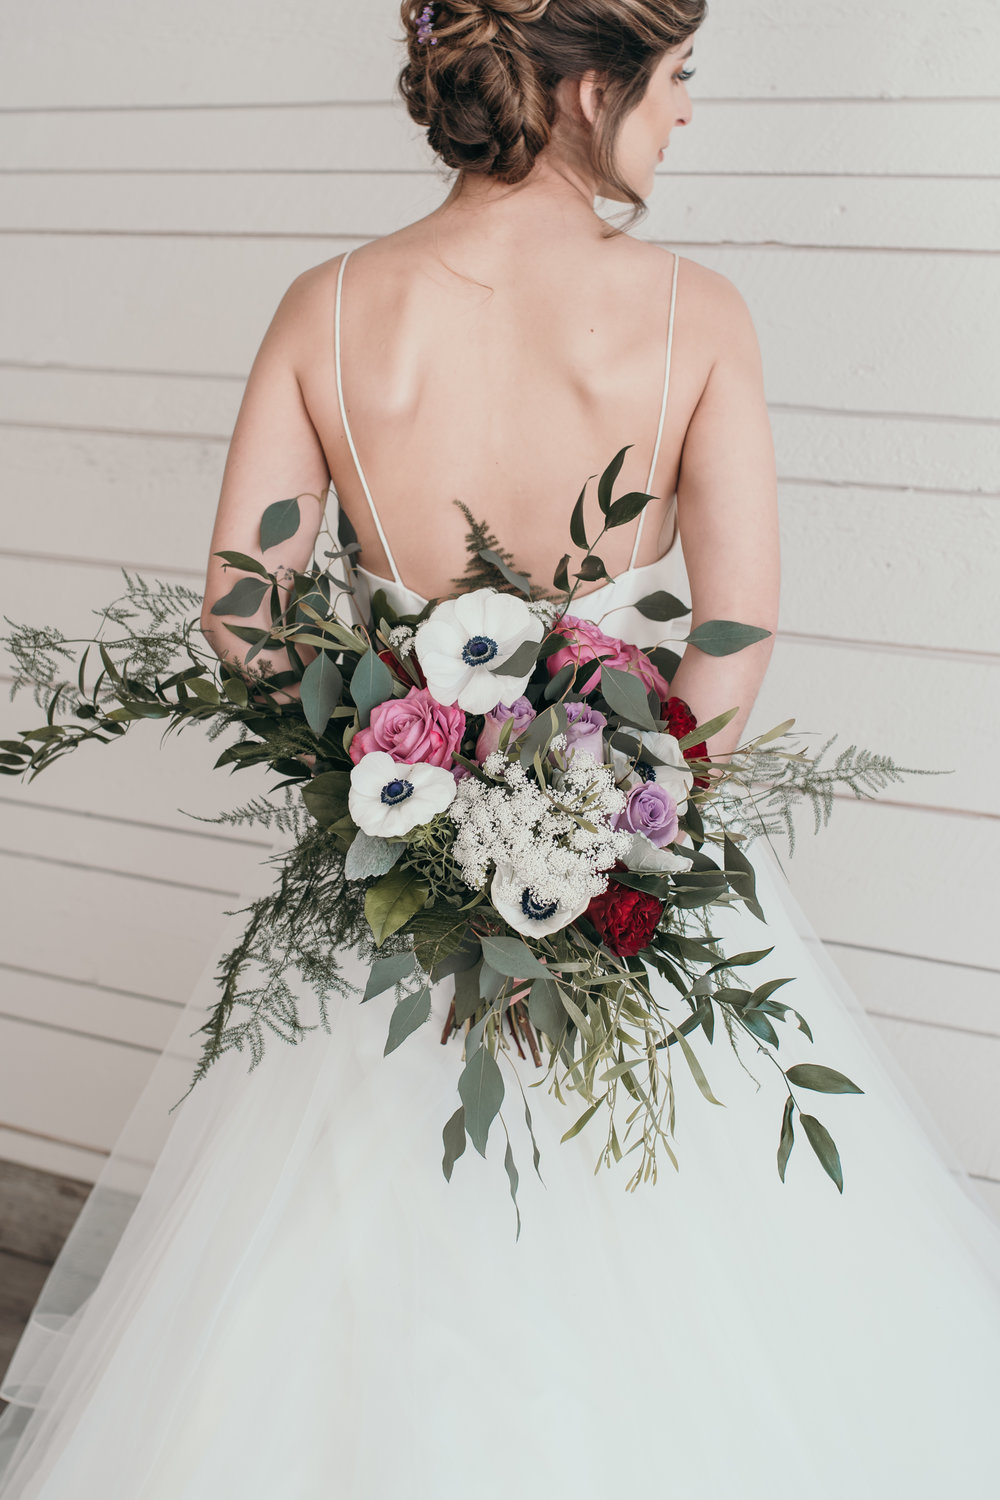 Jewel Tone Wedding Styled Shoot_Silver Knot_Montana Wedding Planner_Montana Wedding Photographer_Montana Wedding Videography_Honeybee Weddings-0632.jpg